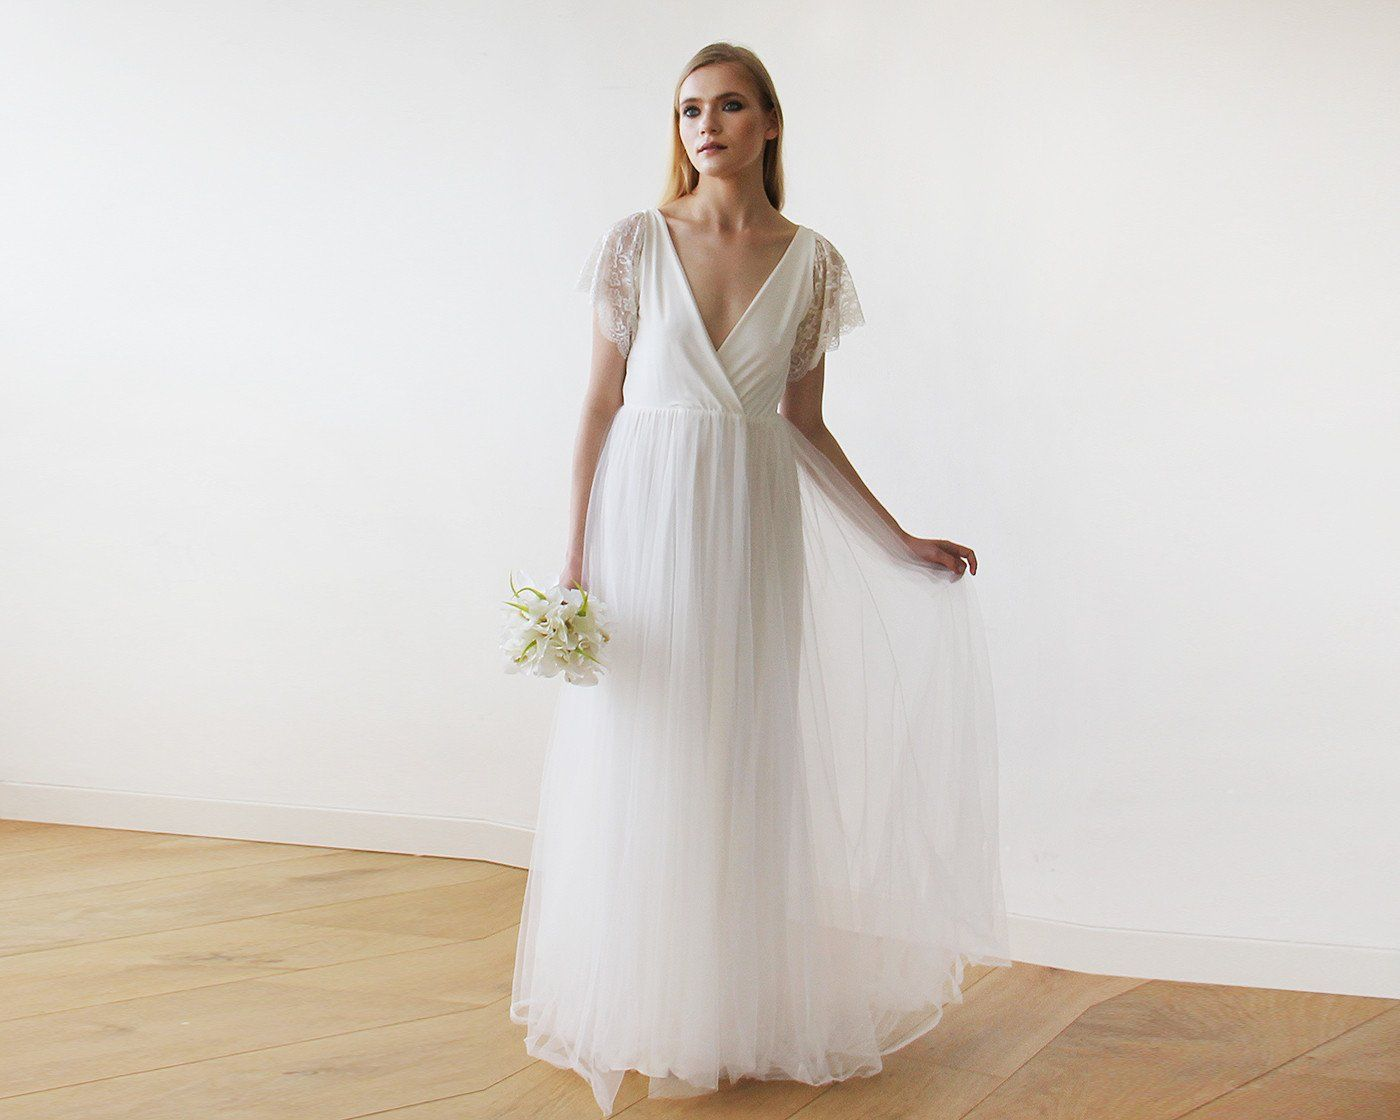 Ivory Lace Sleeves and Maxi Tulle Bridal Gown 1160 - Blushfashion